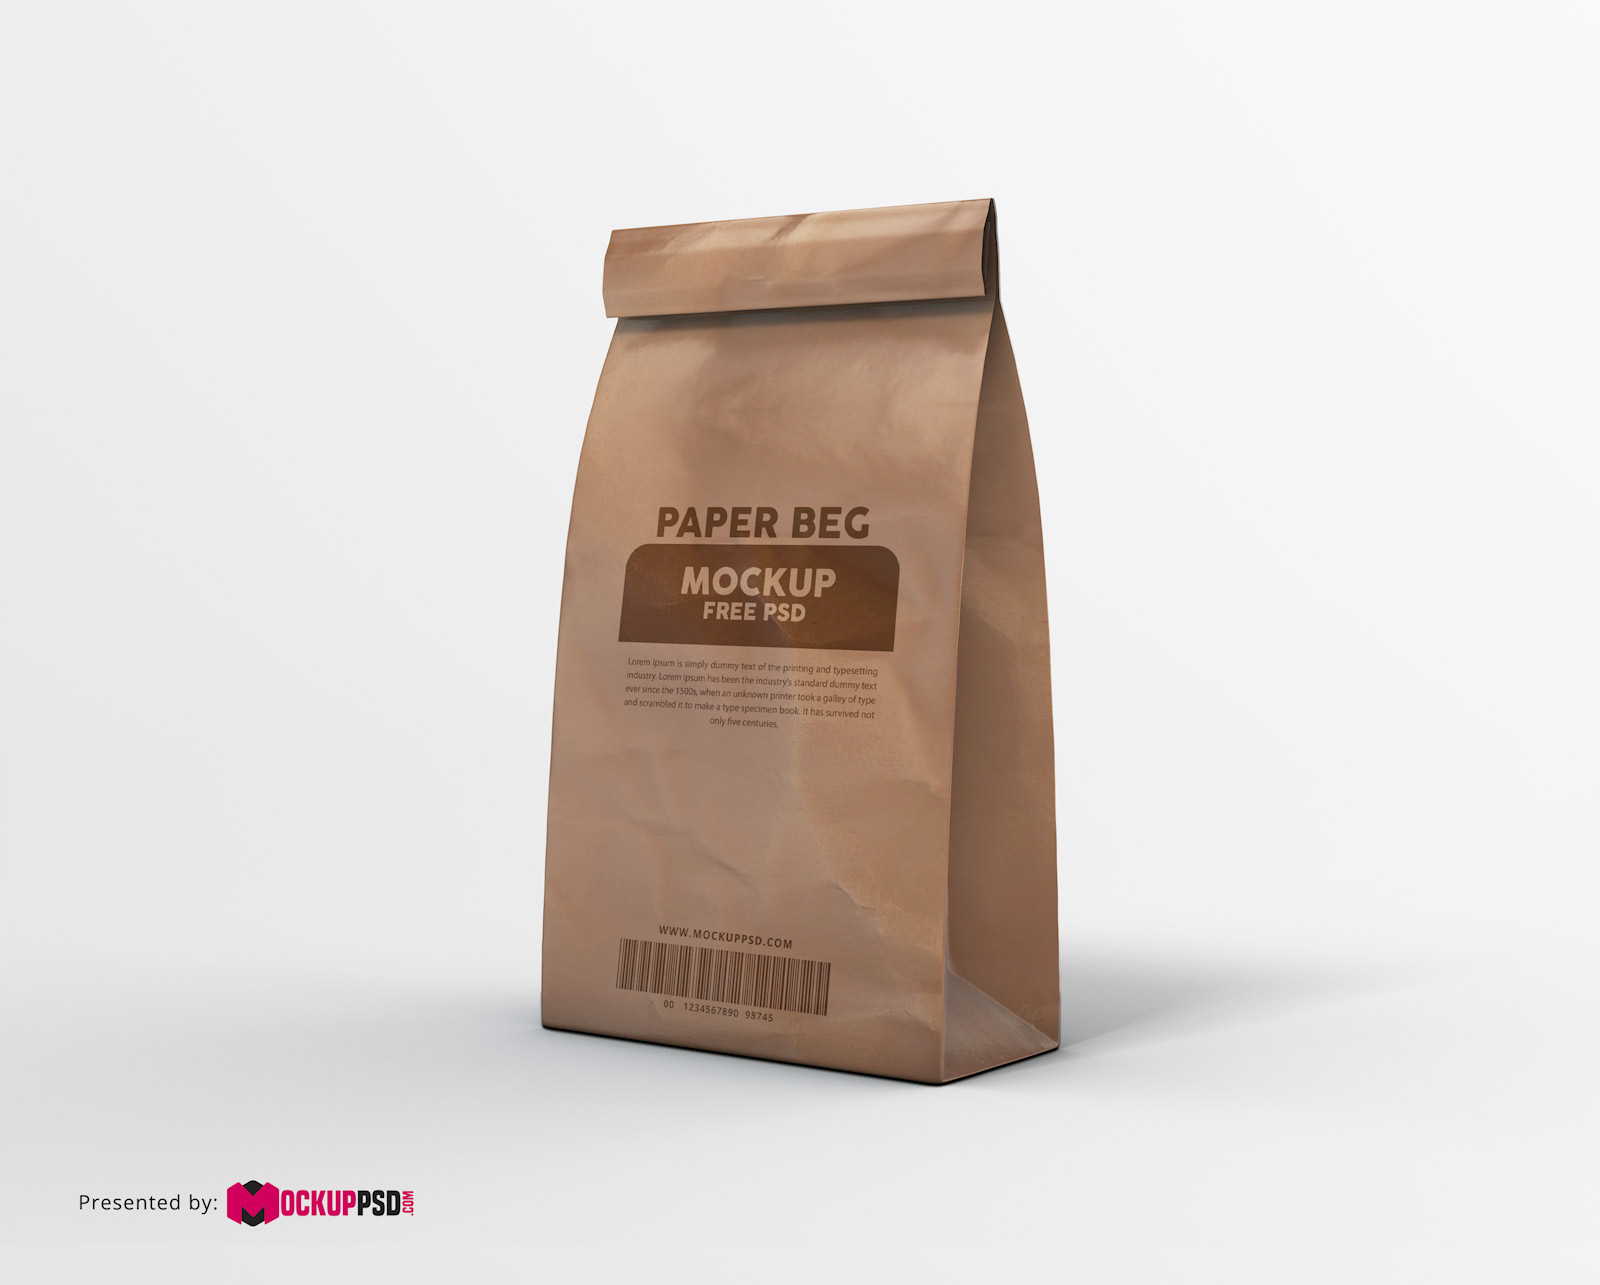 How To Make A Book Cover Out Of A Paper Bag ~ Paper bag mockup free psd mockuppsd.com